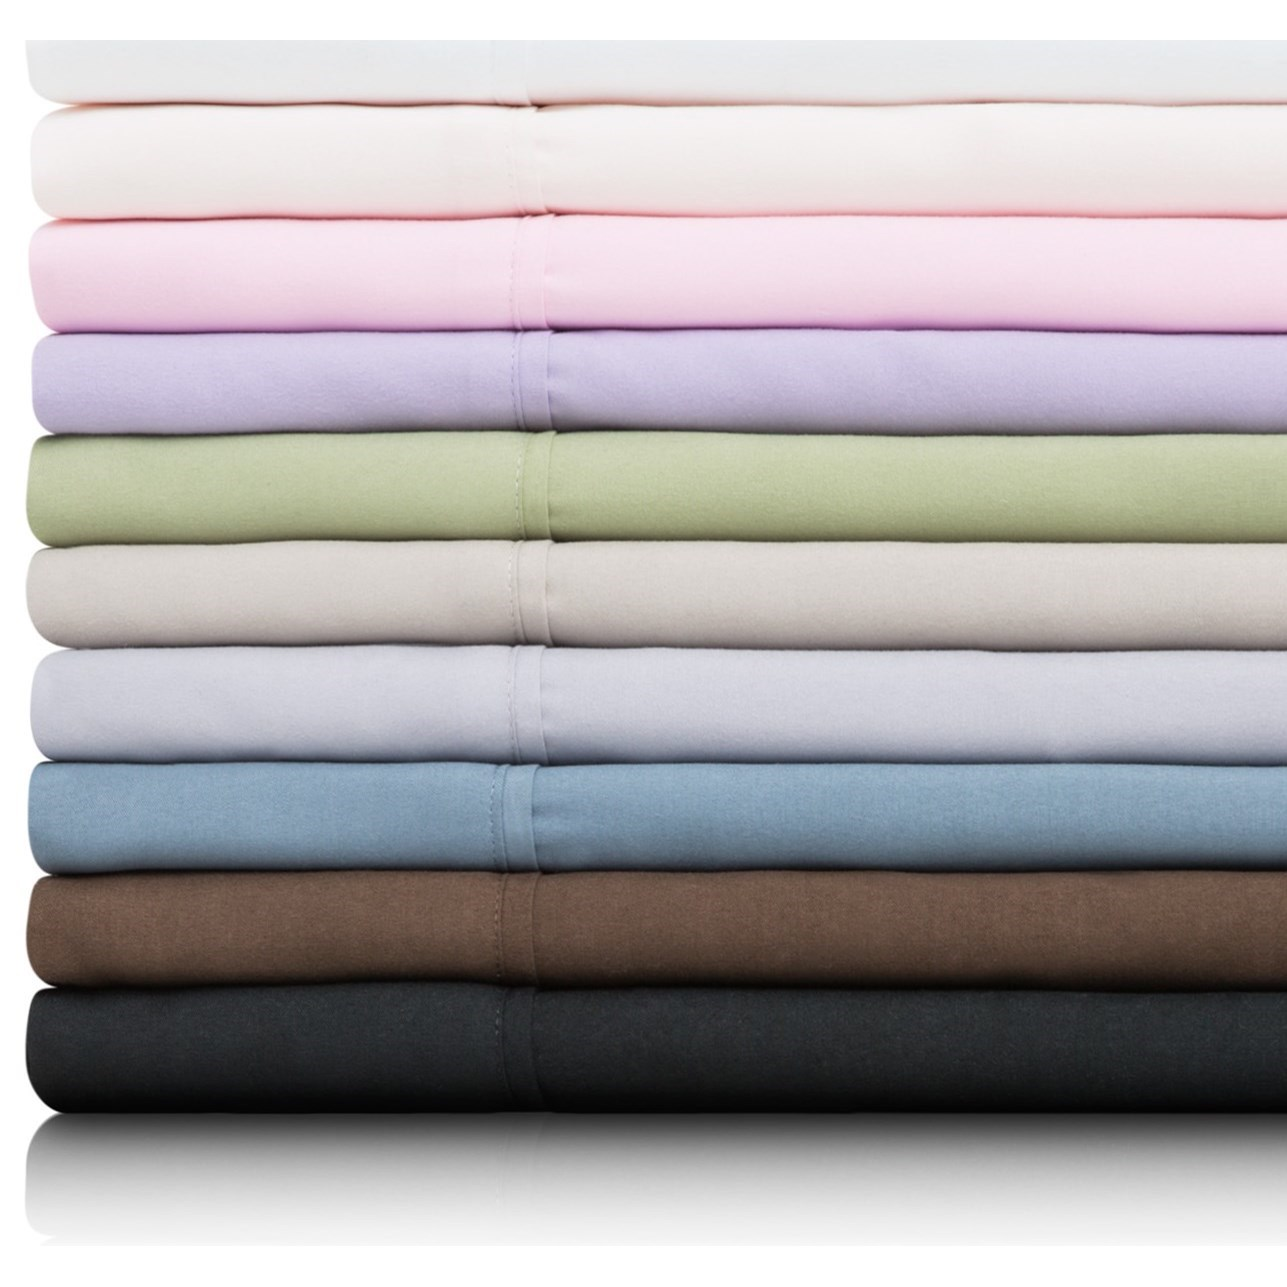 Malouf Brushed Microfiber Split Queen Woven™ Brushed Microfiber Sheet  - Item Number: MA90SQCHMS